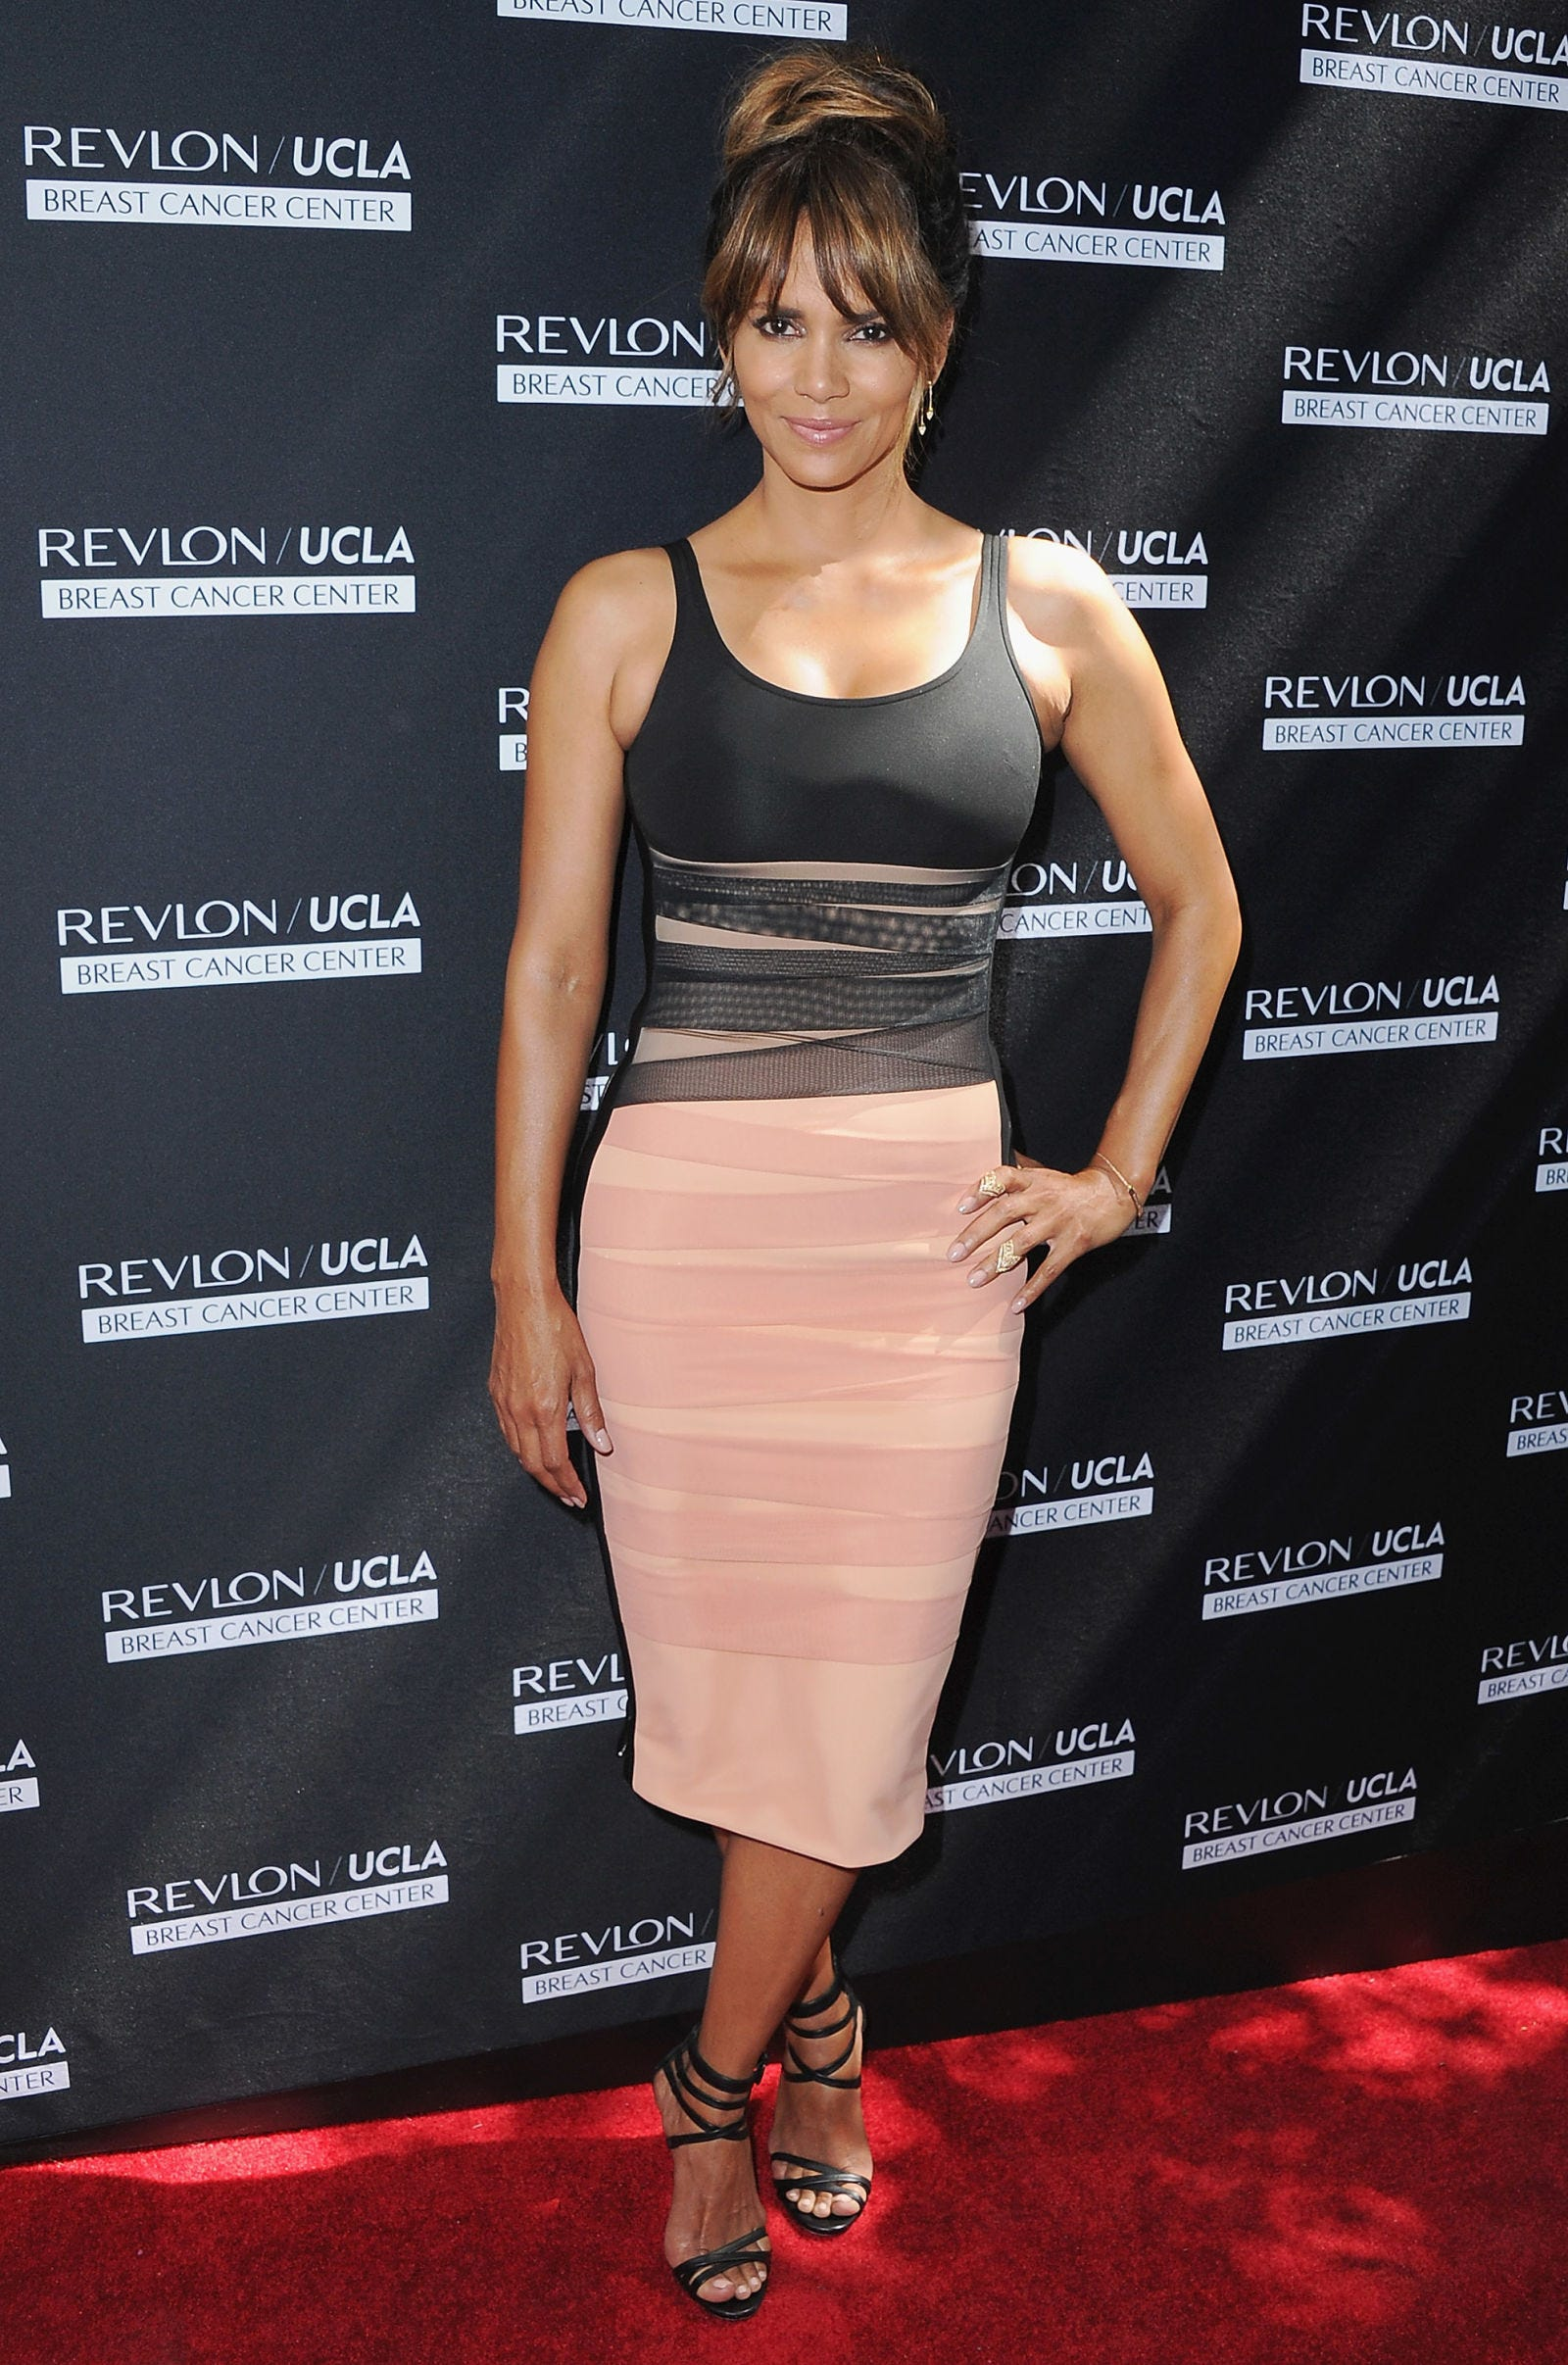 """<p>At Revlon's Annual Philanthropic Luncheon in Support of Revlon's Women's Health Mission in Los Angeles on September 27, 2016.<span class=""""redactor-invisible-space"""" data-verified=""""redactor"""" data-redactor-tag=""""span"""" data-redactor-class=""""redactor-invisible-space""""></span></p>"""